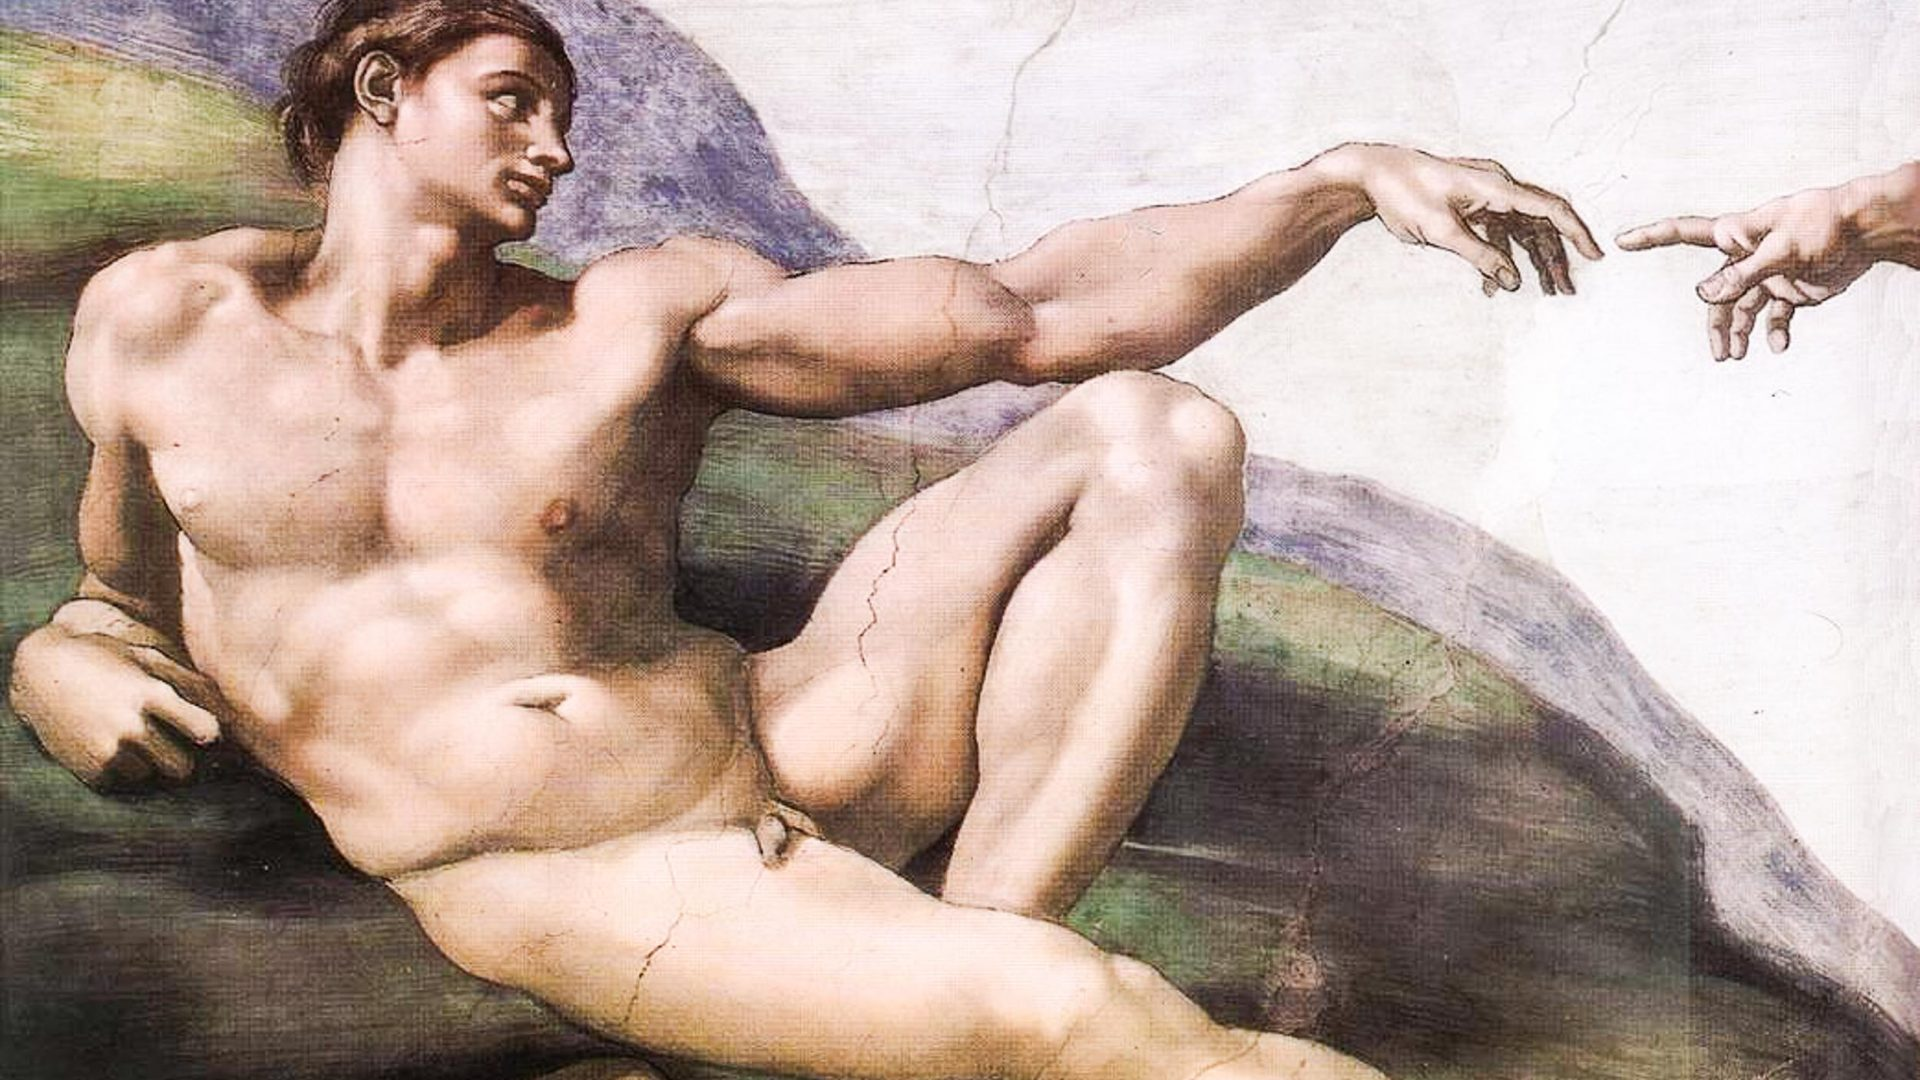 'The Creation of Adam' is one of the nine ceiling panels in the Sistine Chapel depicting scenes from the book of Genesis.